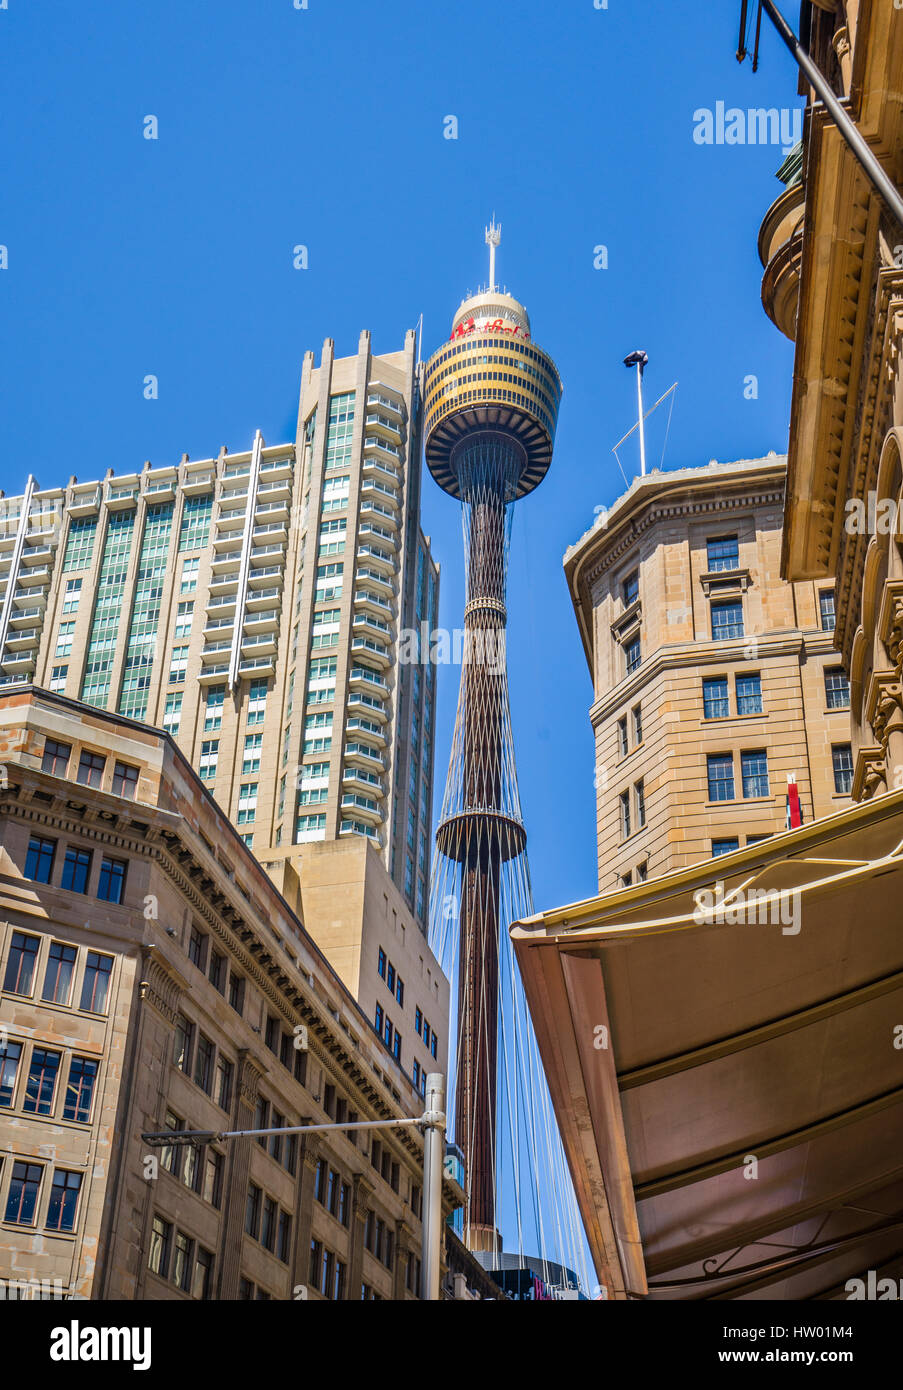 Australia, New South Wales, Sydney, mole's eye view from Market Street with Queen Victoria Building ans Sydney - Stock Image